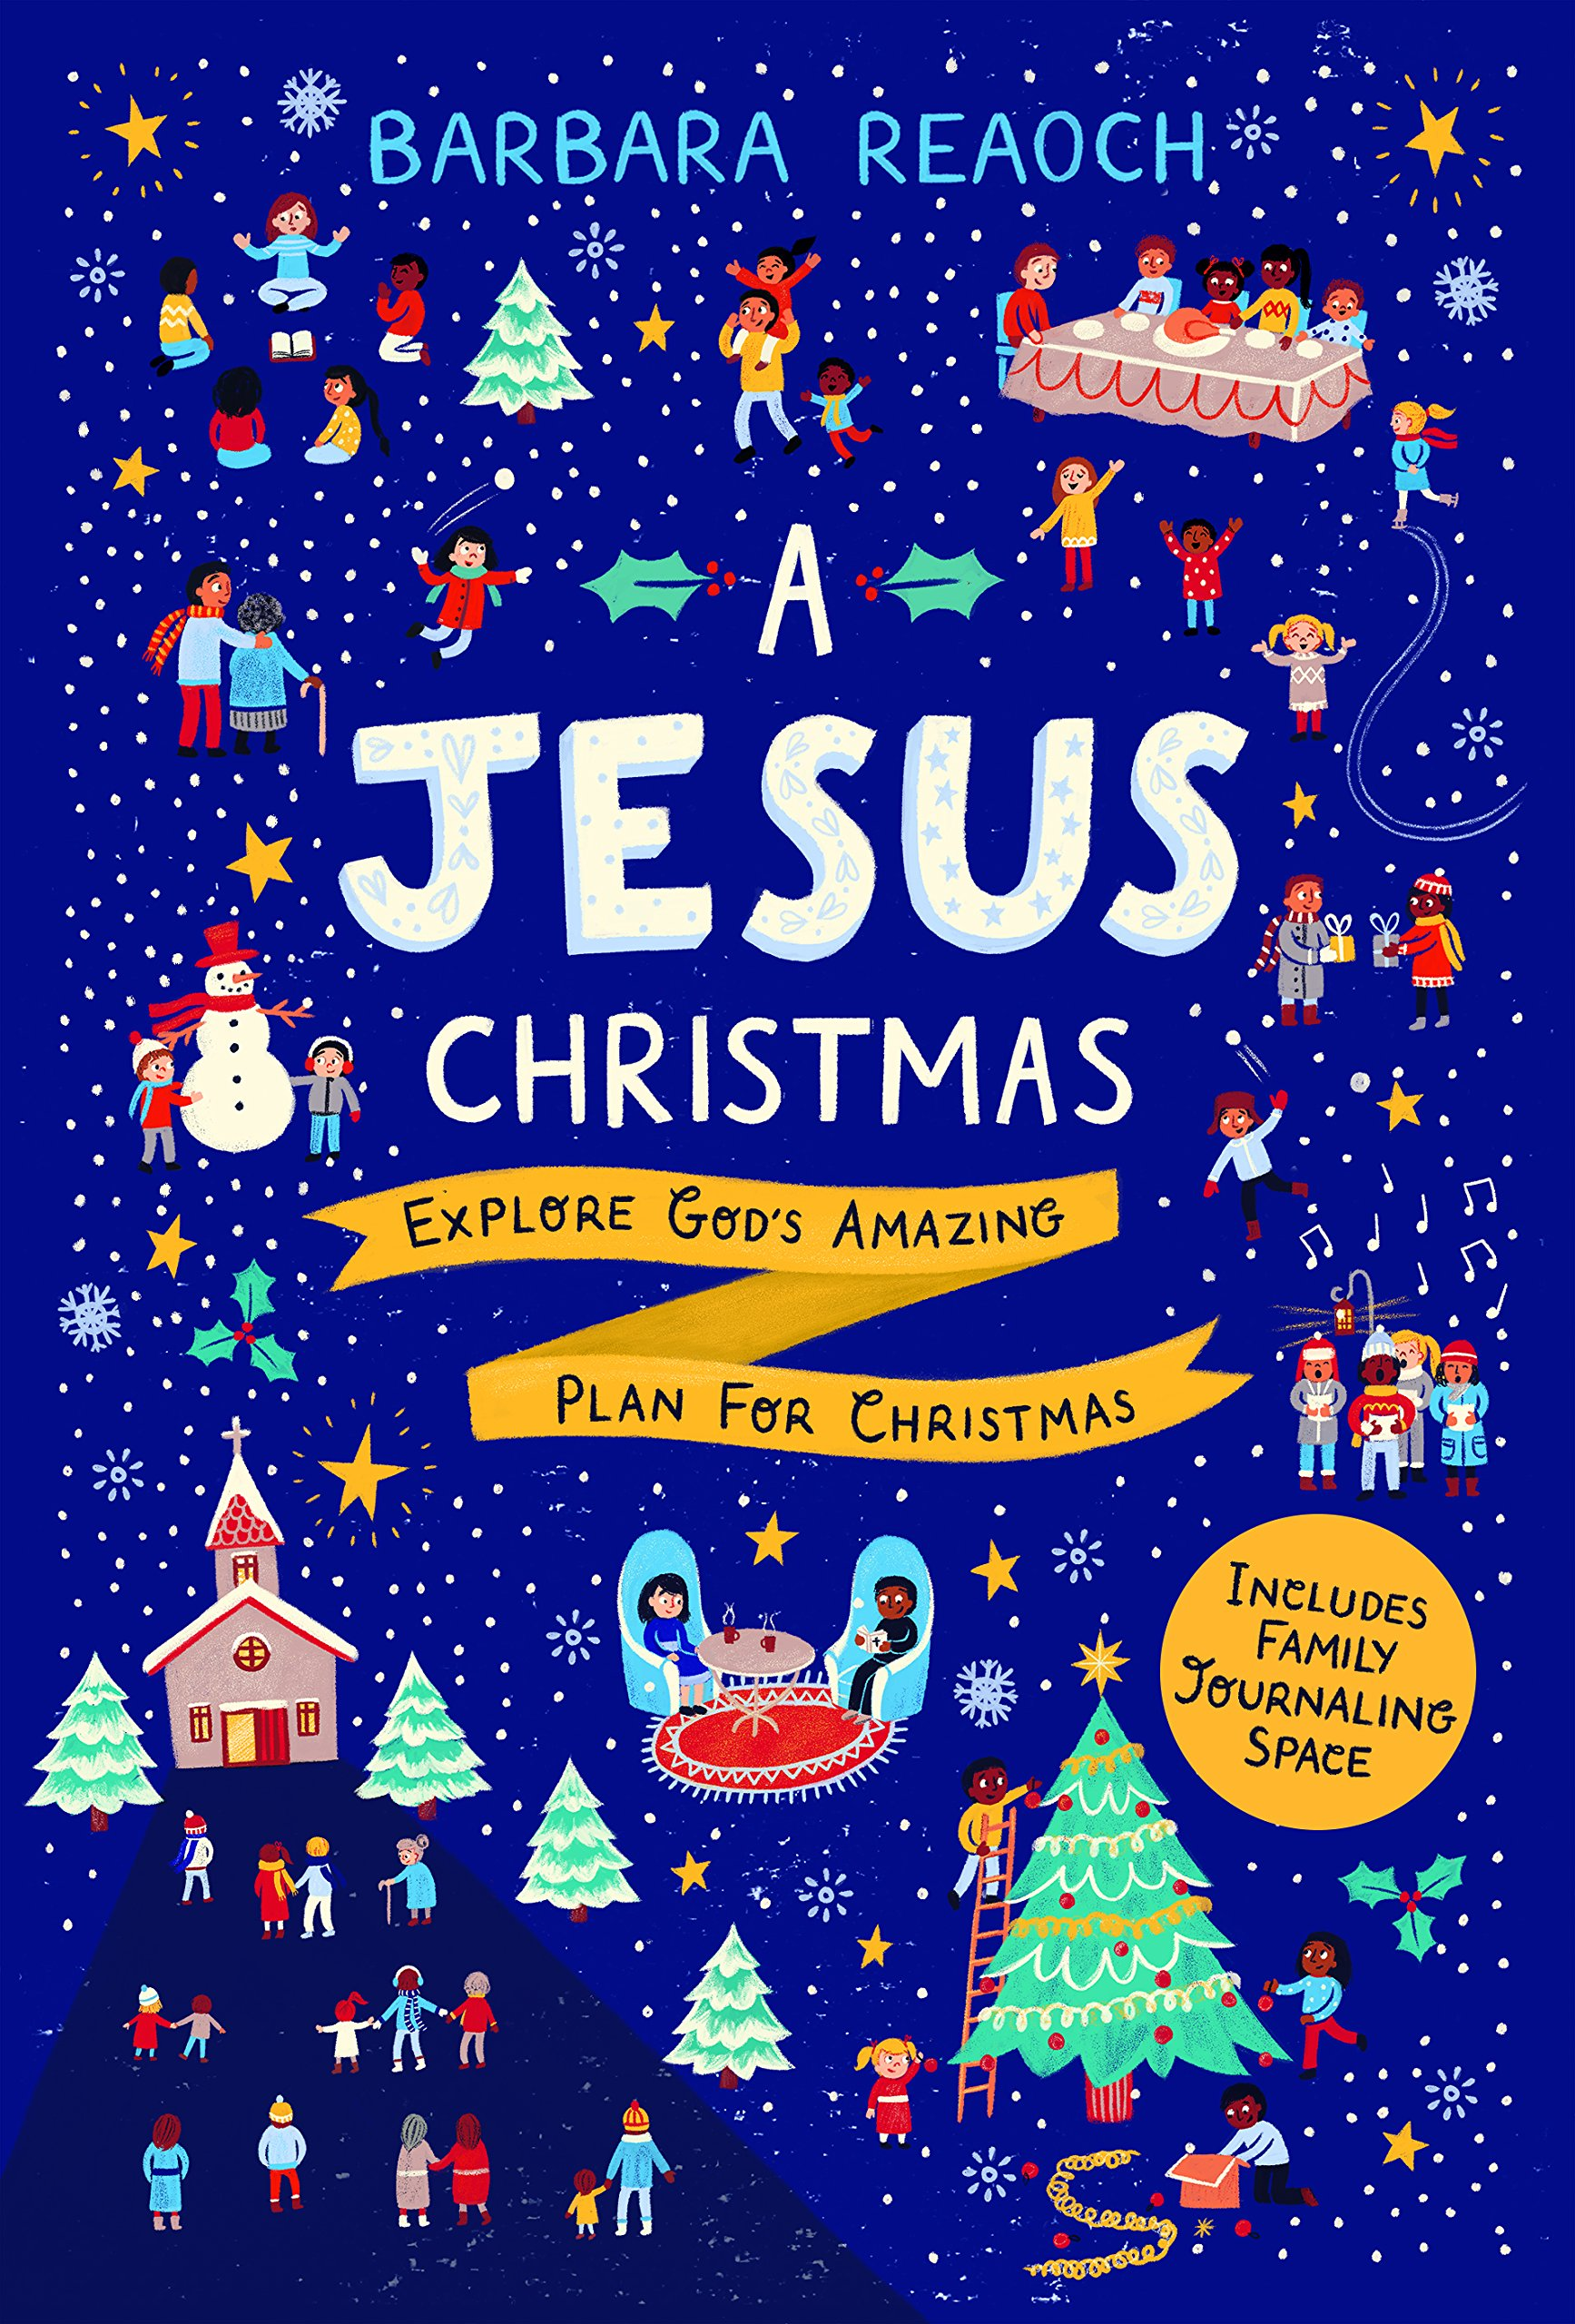 A Jesus Christmas: Barbara Reaoch: 9781784982270: Amazon.com: Books